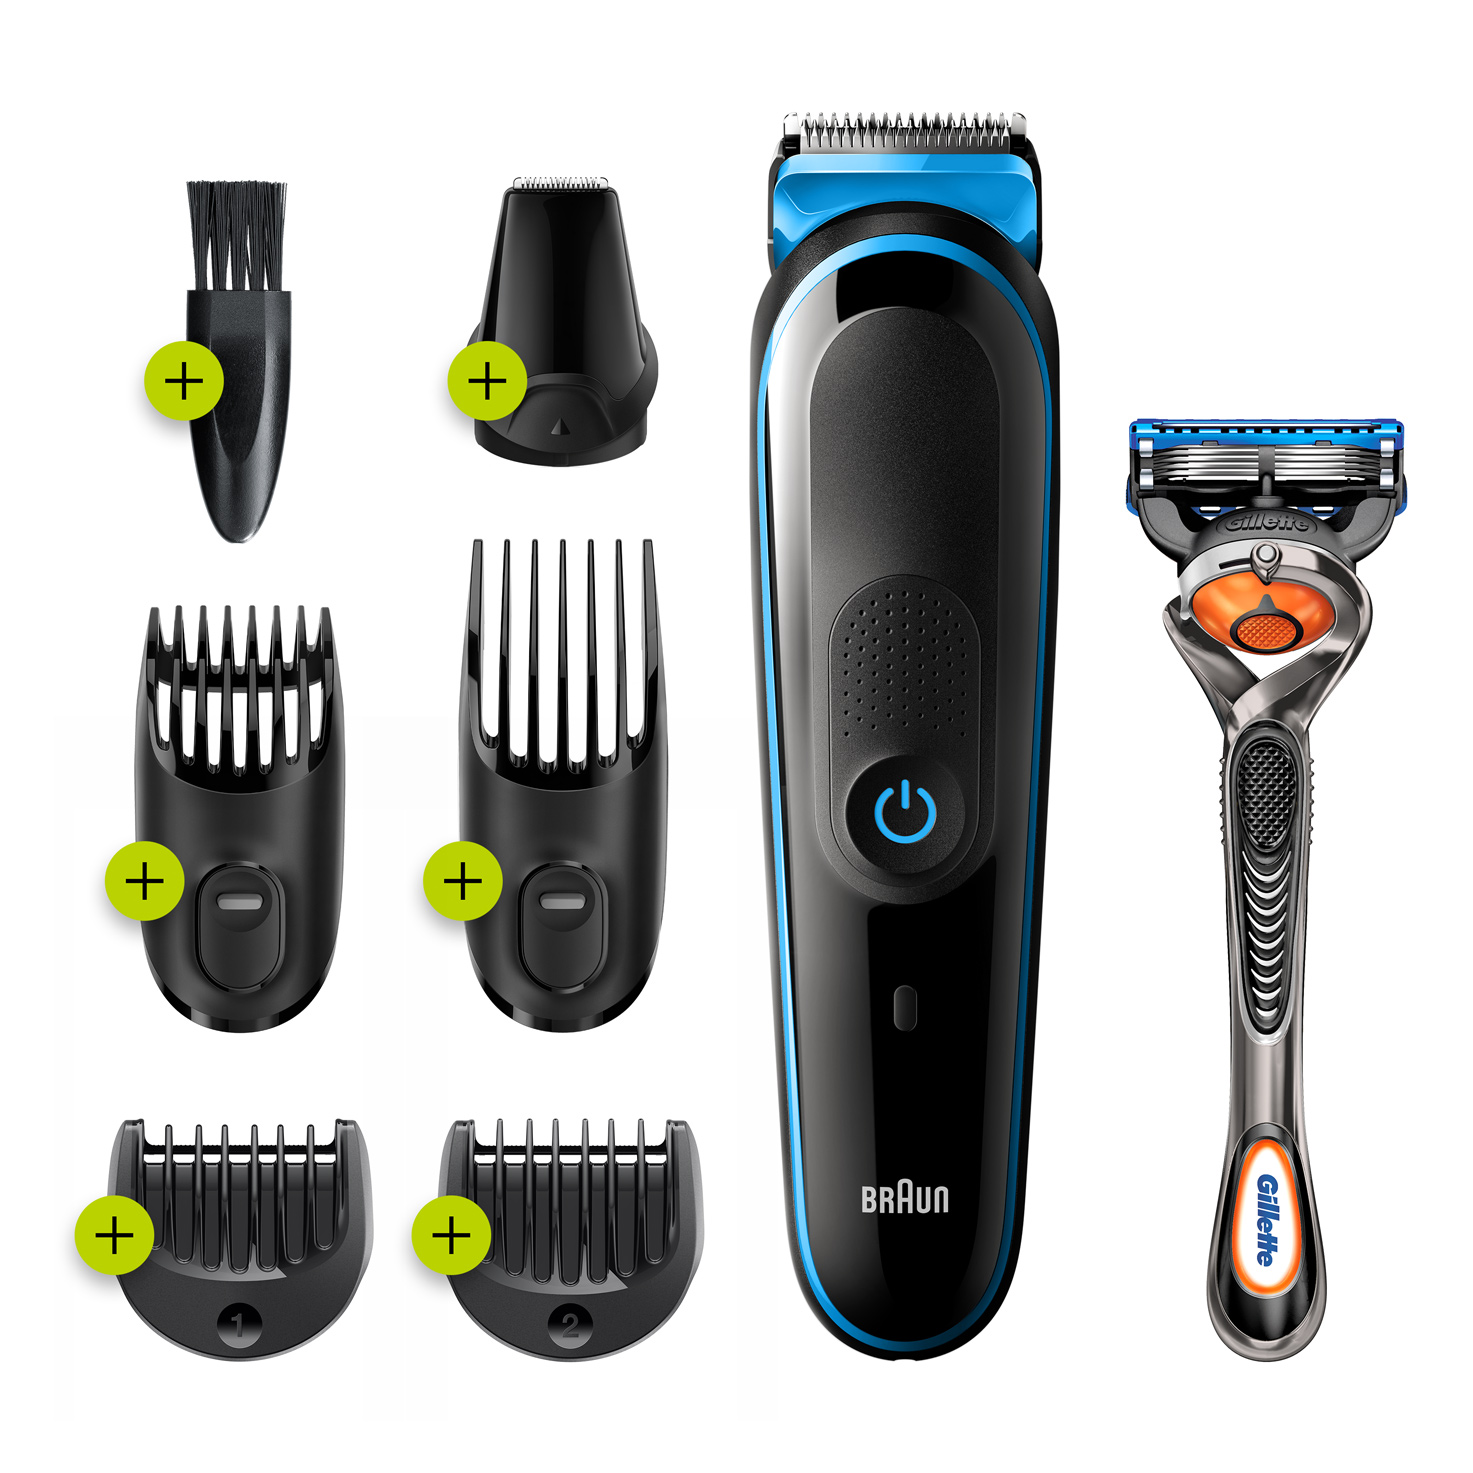 Braun All in one trimmer 3 MGK3245